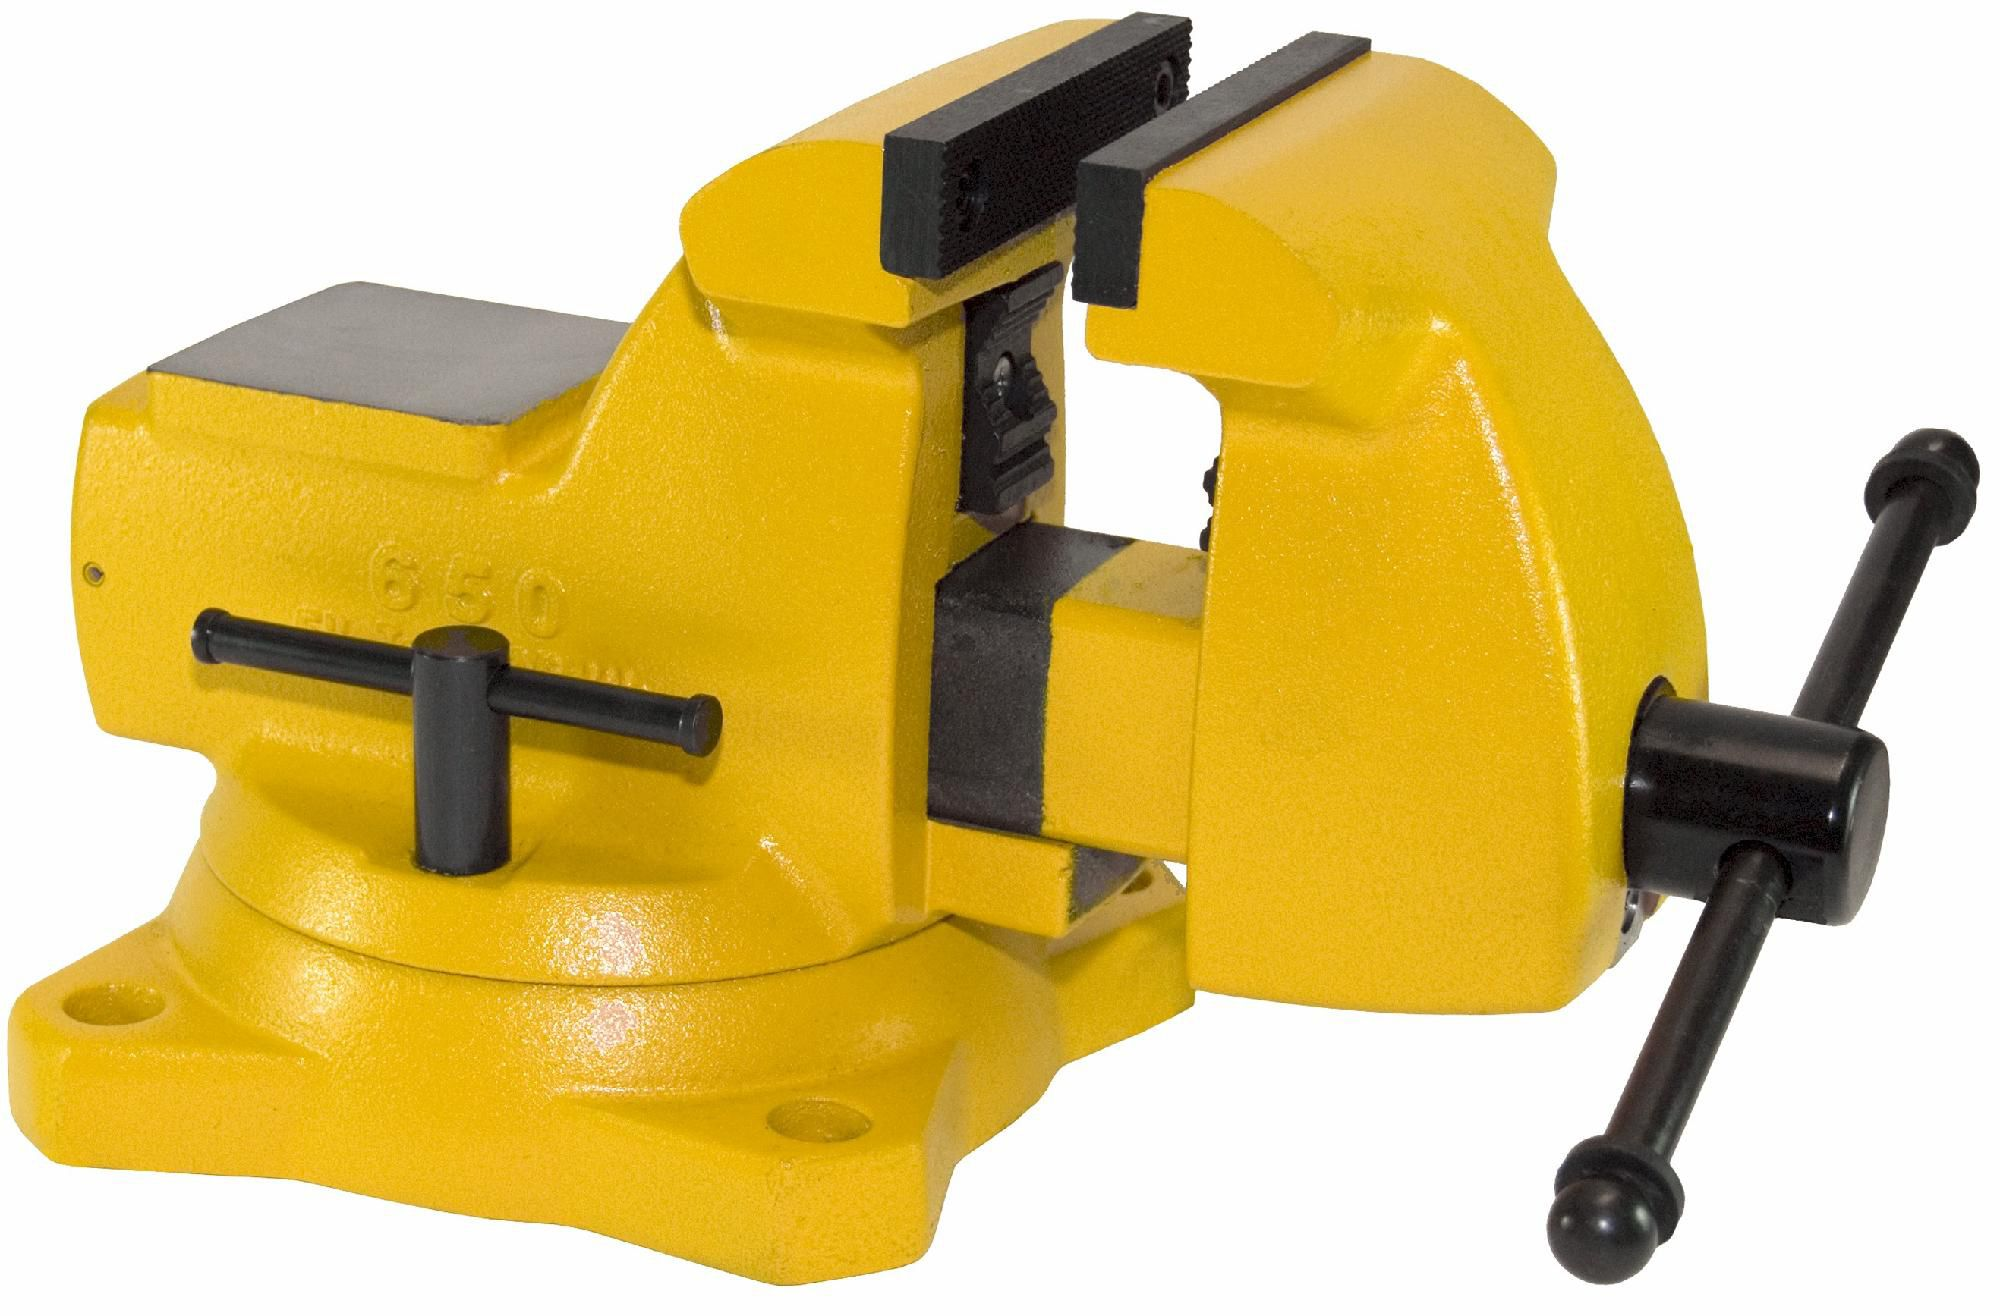 650-HV - High Visibility Mechanic's Vise